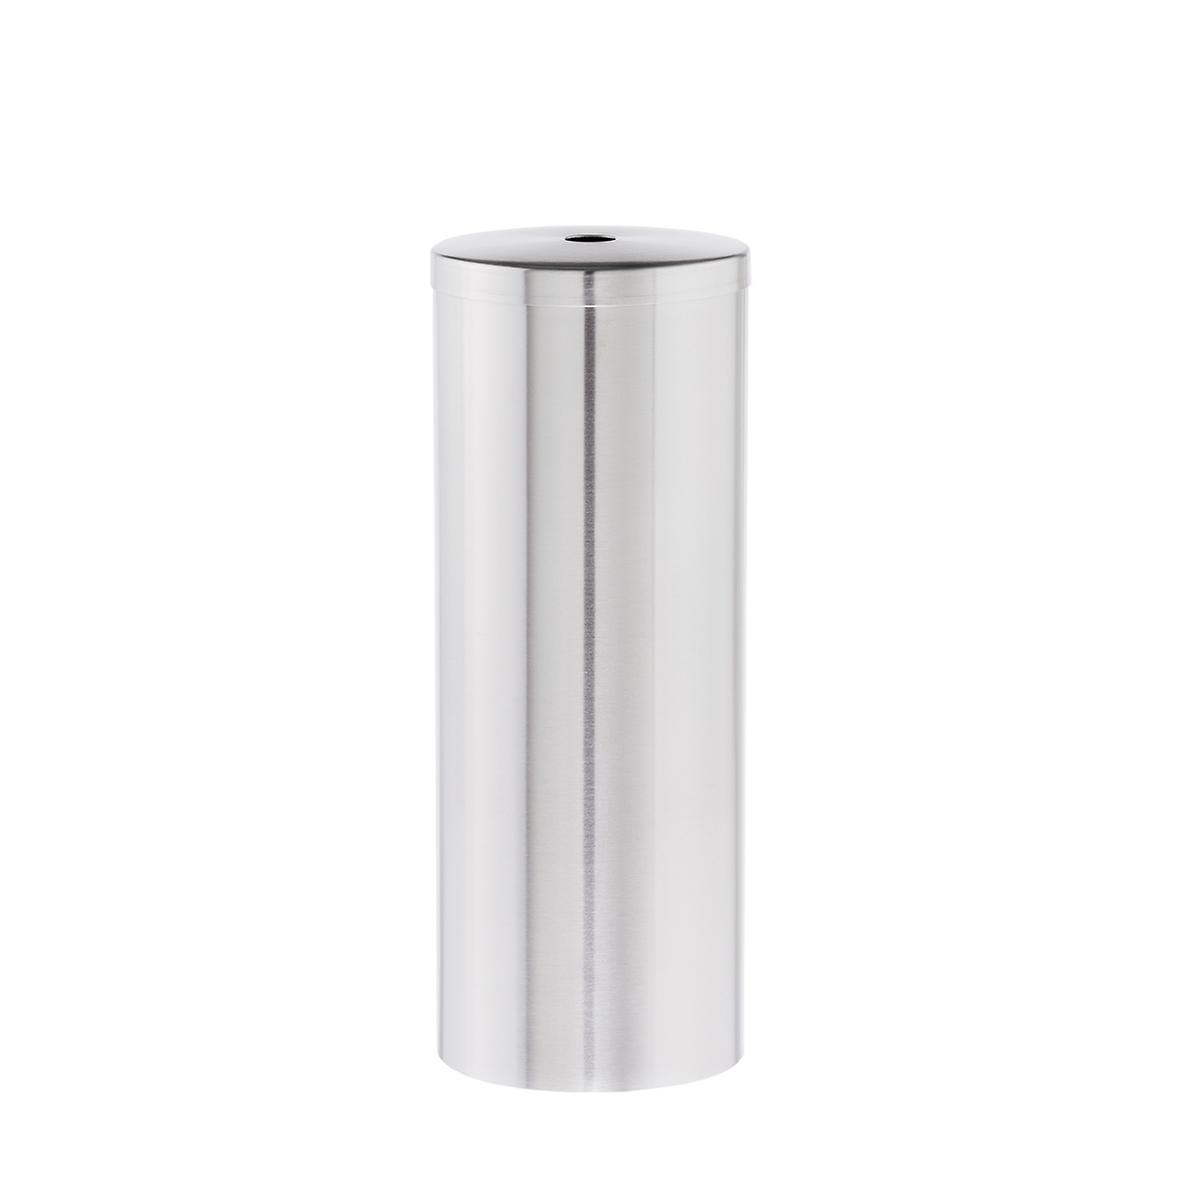 Forma bath tissue canister the container store - Toilet roll canister ...